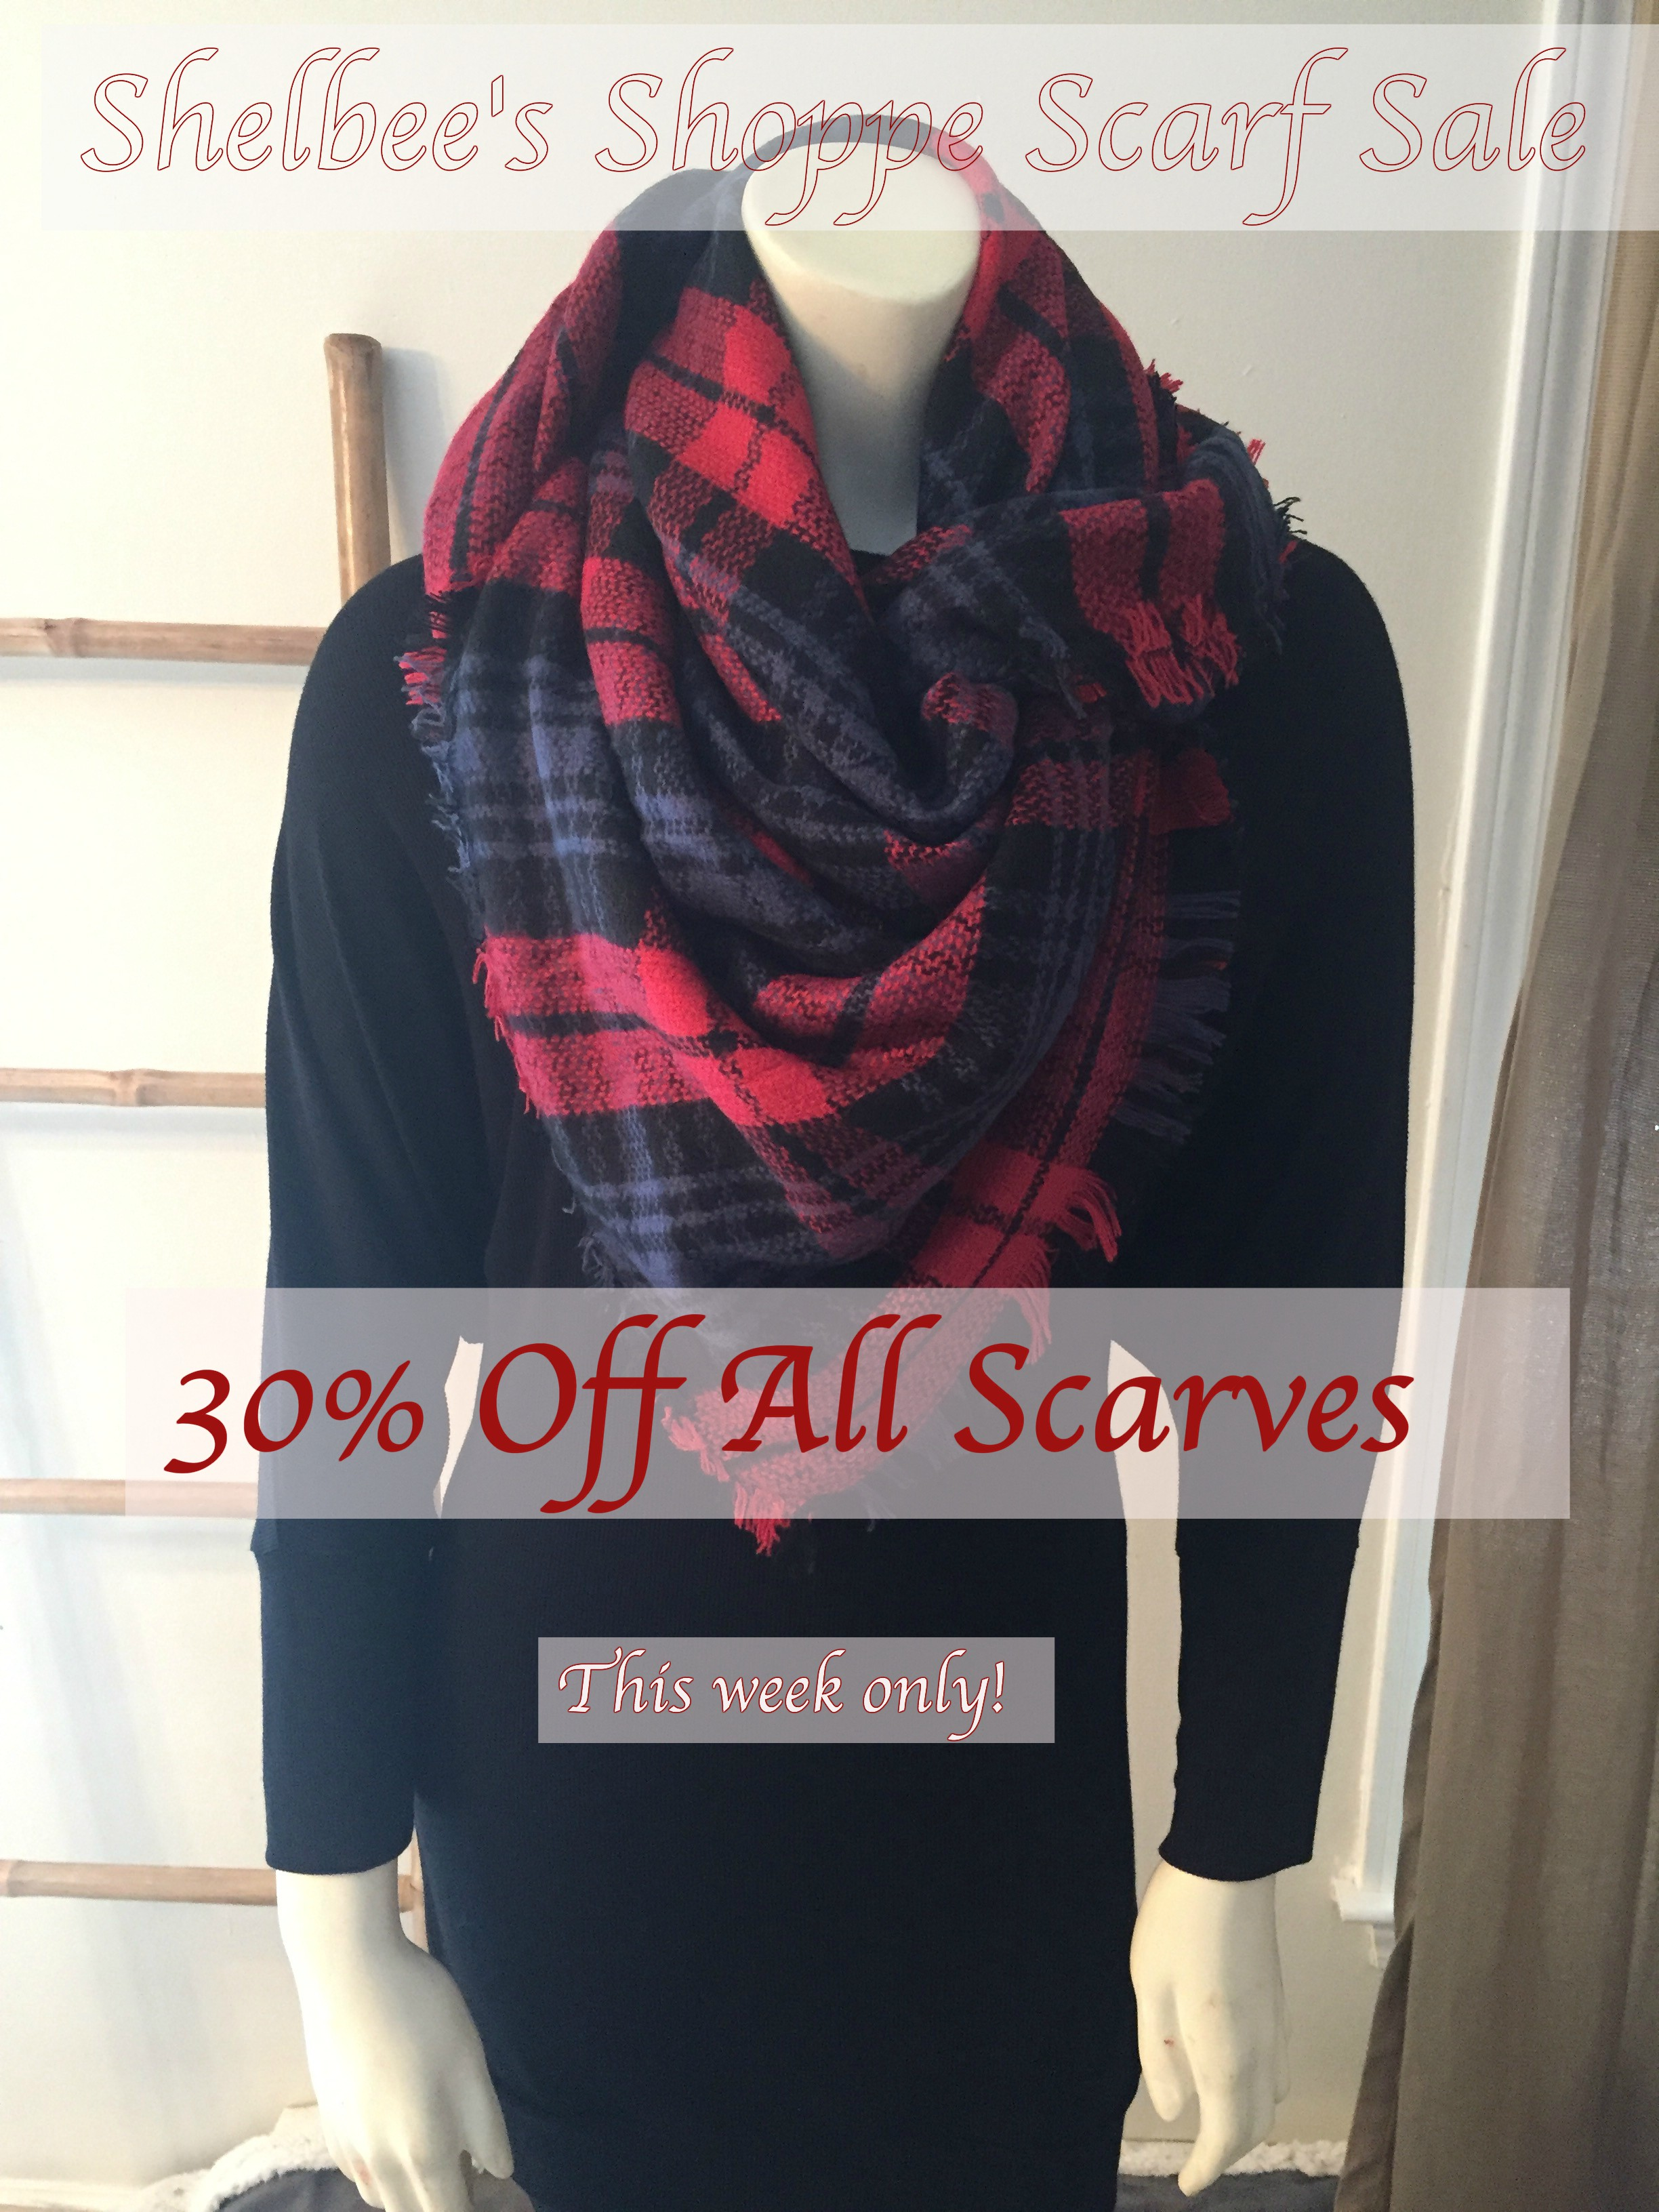 Scarf Sale! 30% OFF All Shelbee's Shoppe Scarves